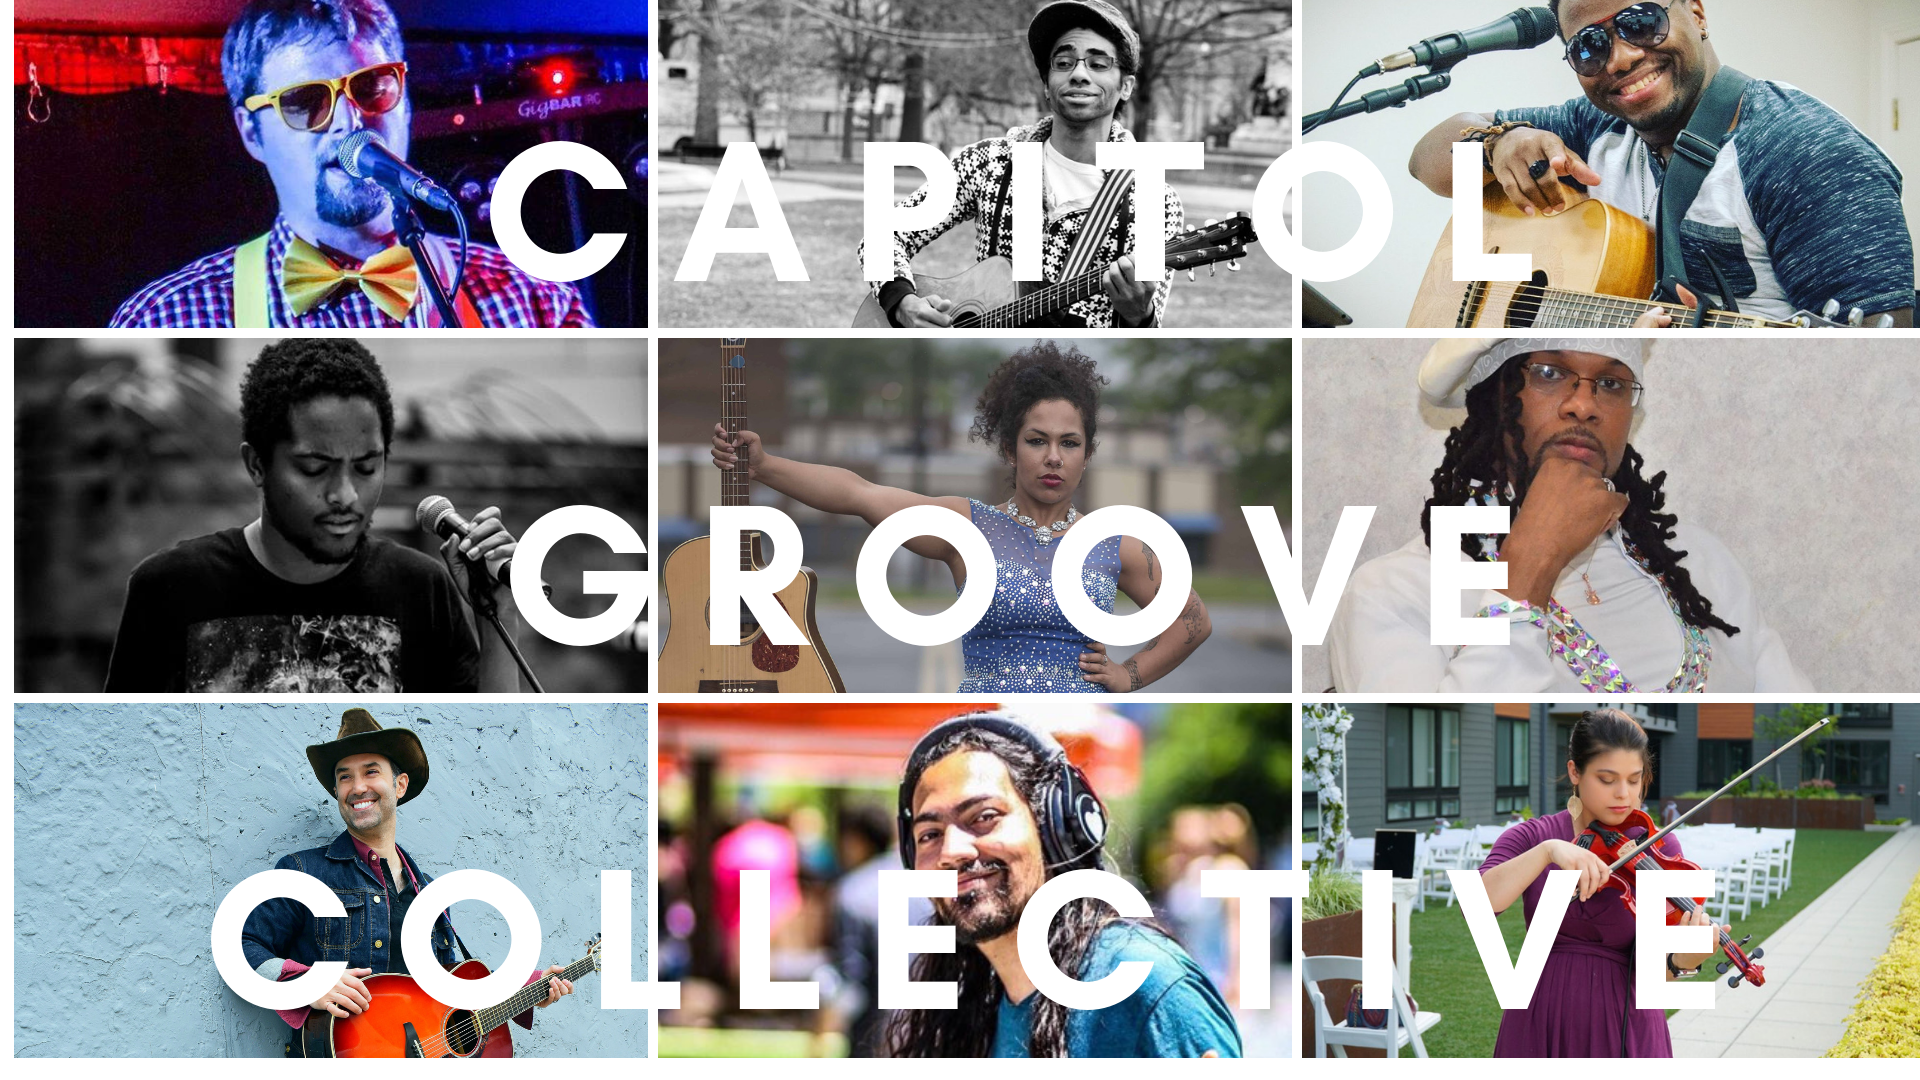 CAPITOL GROOVE COLLECTIVE : One stop shop for all of your entertainment needs - Event, festival and corporate entertainmentFeaturing:Andrew Burleson (vocals/guitar and band: original and cover music) - WATCH HEREBilly Mayfield (vocals/piano and band: original and cover music) - LISTEN HERECody Valentine (MC: original music) - LISTEN HEREDJ Reality Check (DJ: original music) - LISTEN HEREEmma G (vocals/guitar, duo and band: original and cover music) - LISTEN HEREJahnel Daliya (vocals/guitar and band: original and cover music) - LISTEN HEREMason McCormick (guitar and vocals: original humor music) - LISTEN HEREMost Savage Gentlemen (originals and covers rock / punk band: original and cover music) - LISTEN HEREMusic Giff (MC and vocals/guitar: original and cover music) - WATCH HERENick DePinto (photographer) - SEE PHOTOS HERERobert Ax (vocals/guitar and band: original and cover music) - WATCH HERESilence Echoez / Joey J Drums (vocals/guitar, drums, and band: original and cover music)Stephanie Mathias (vocals, violin and piano: original and cover music) - LISTEN HERESugi (guitarist and songwriter) - LISTEN HEREThe Dusty Stars (band: original music) - LISTEN HEREYellow Tie Guy (vocals/guitar and band: original and cover music) - LISTEN HEREFor more information, CLICK HERE